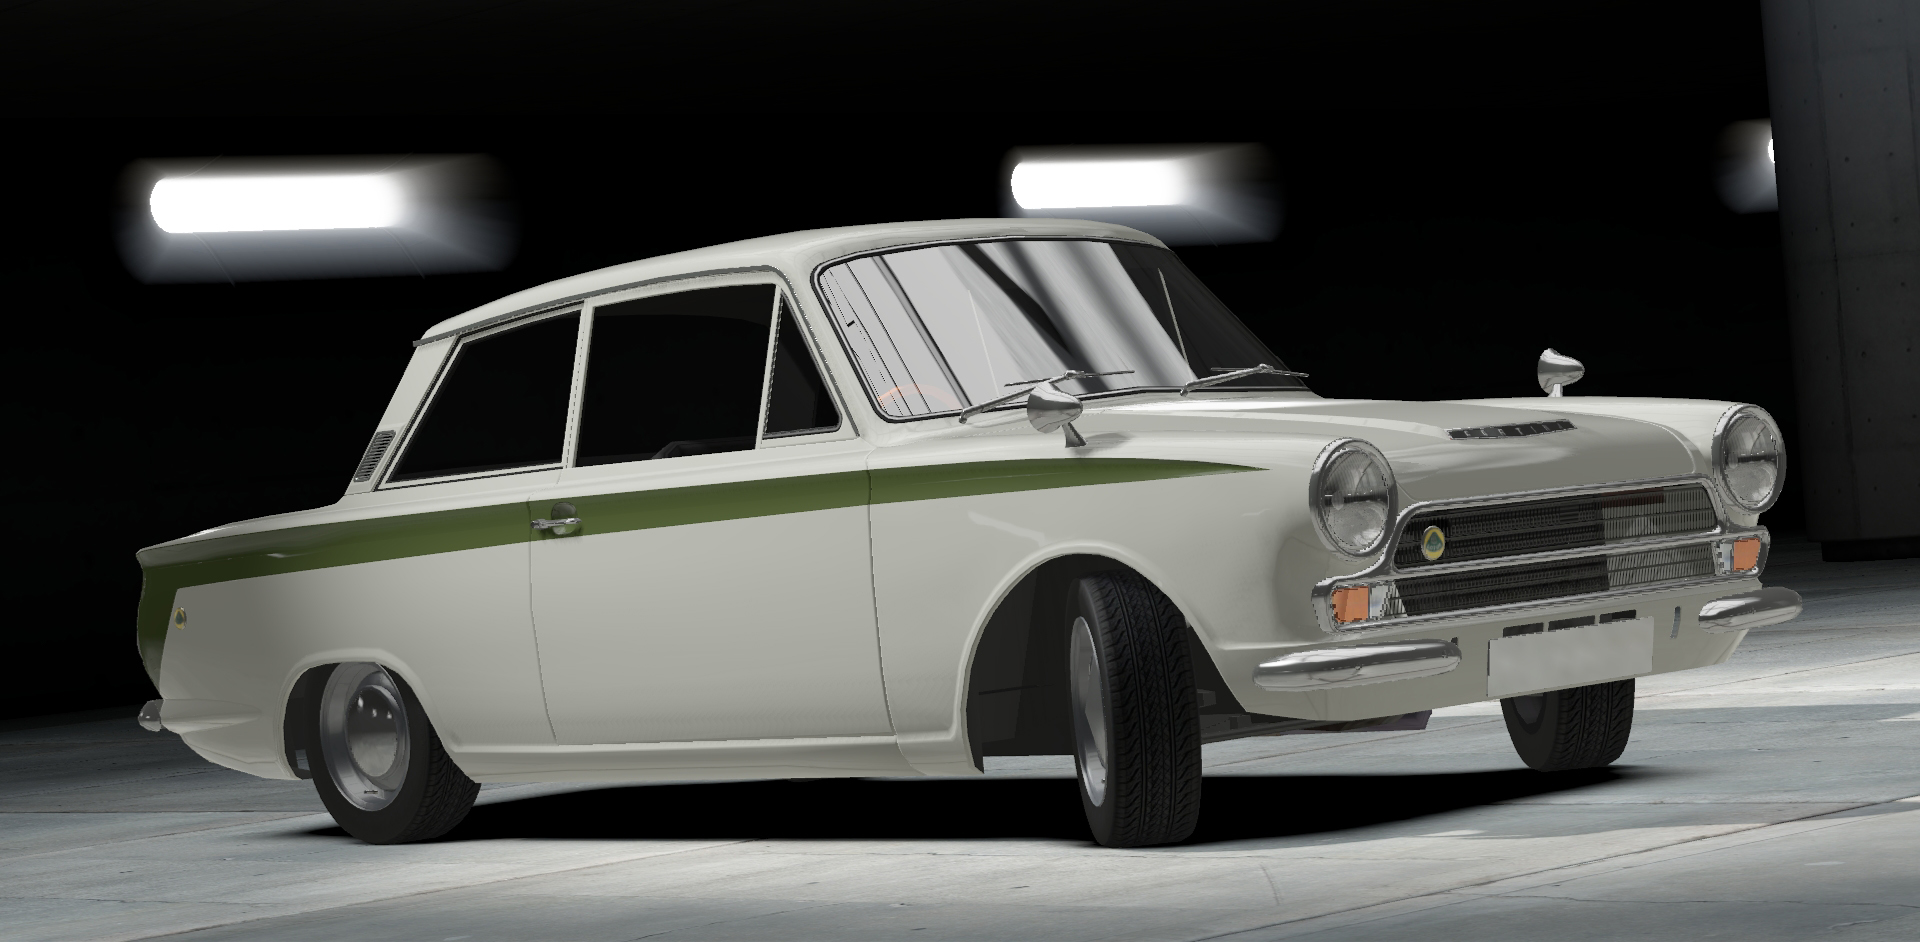 ford lotus cortina need for speed wiki fandom powered. Black Bedroom Furniture Sets. Home Design Ideas